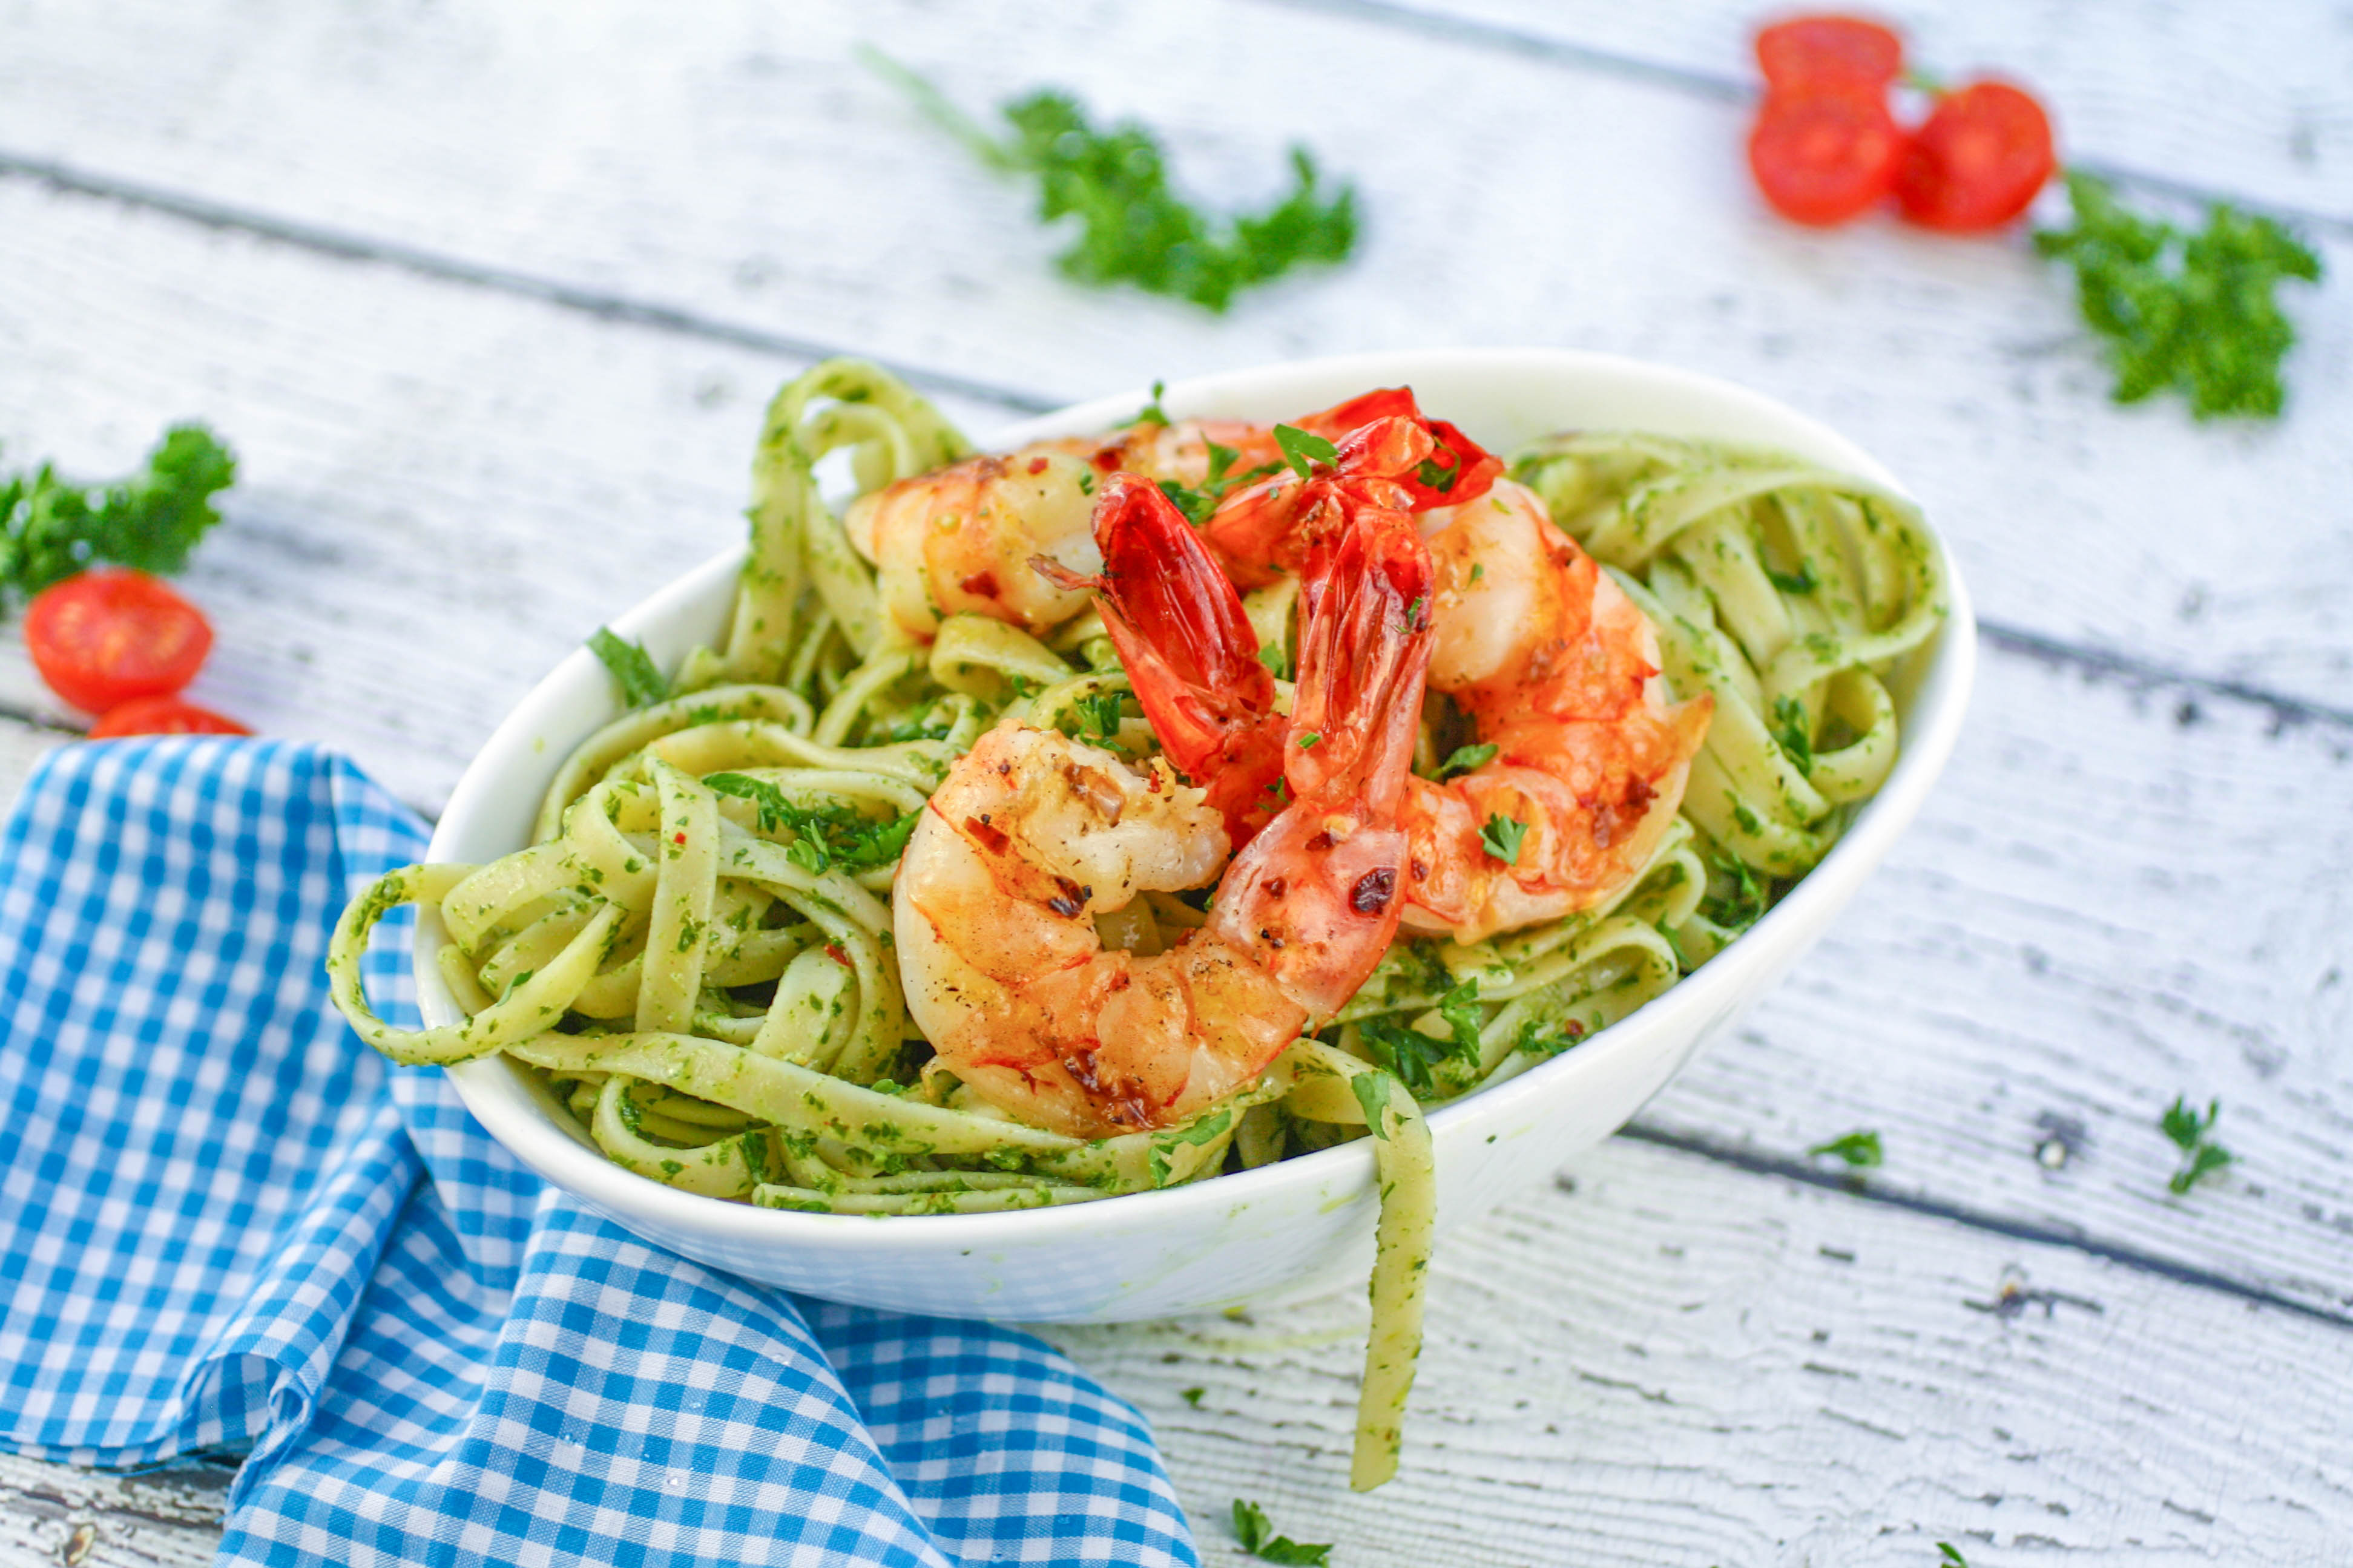 Chimichurri Pasta with Grilled Spicy Shrimp is perfect any night of the week. Chimichurri Pasta with Grilled Spicy Shrimp is an ideal meal during Lent.